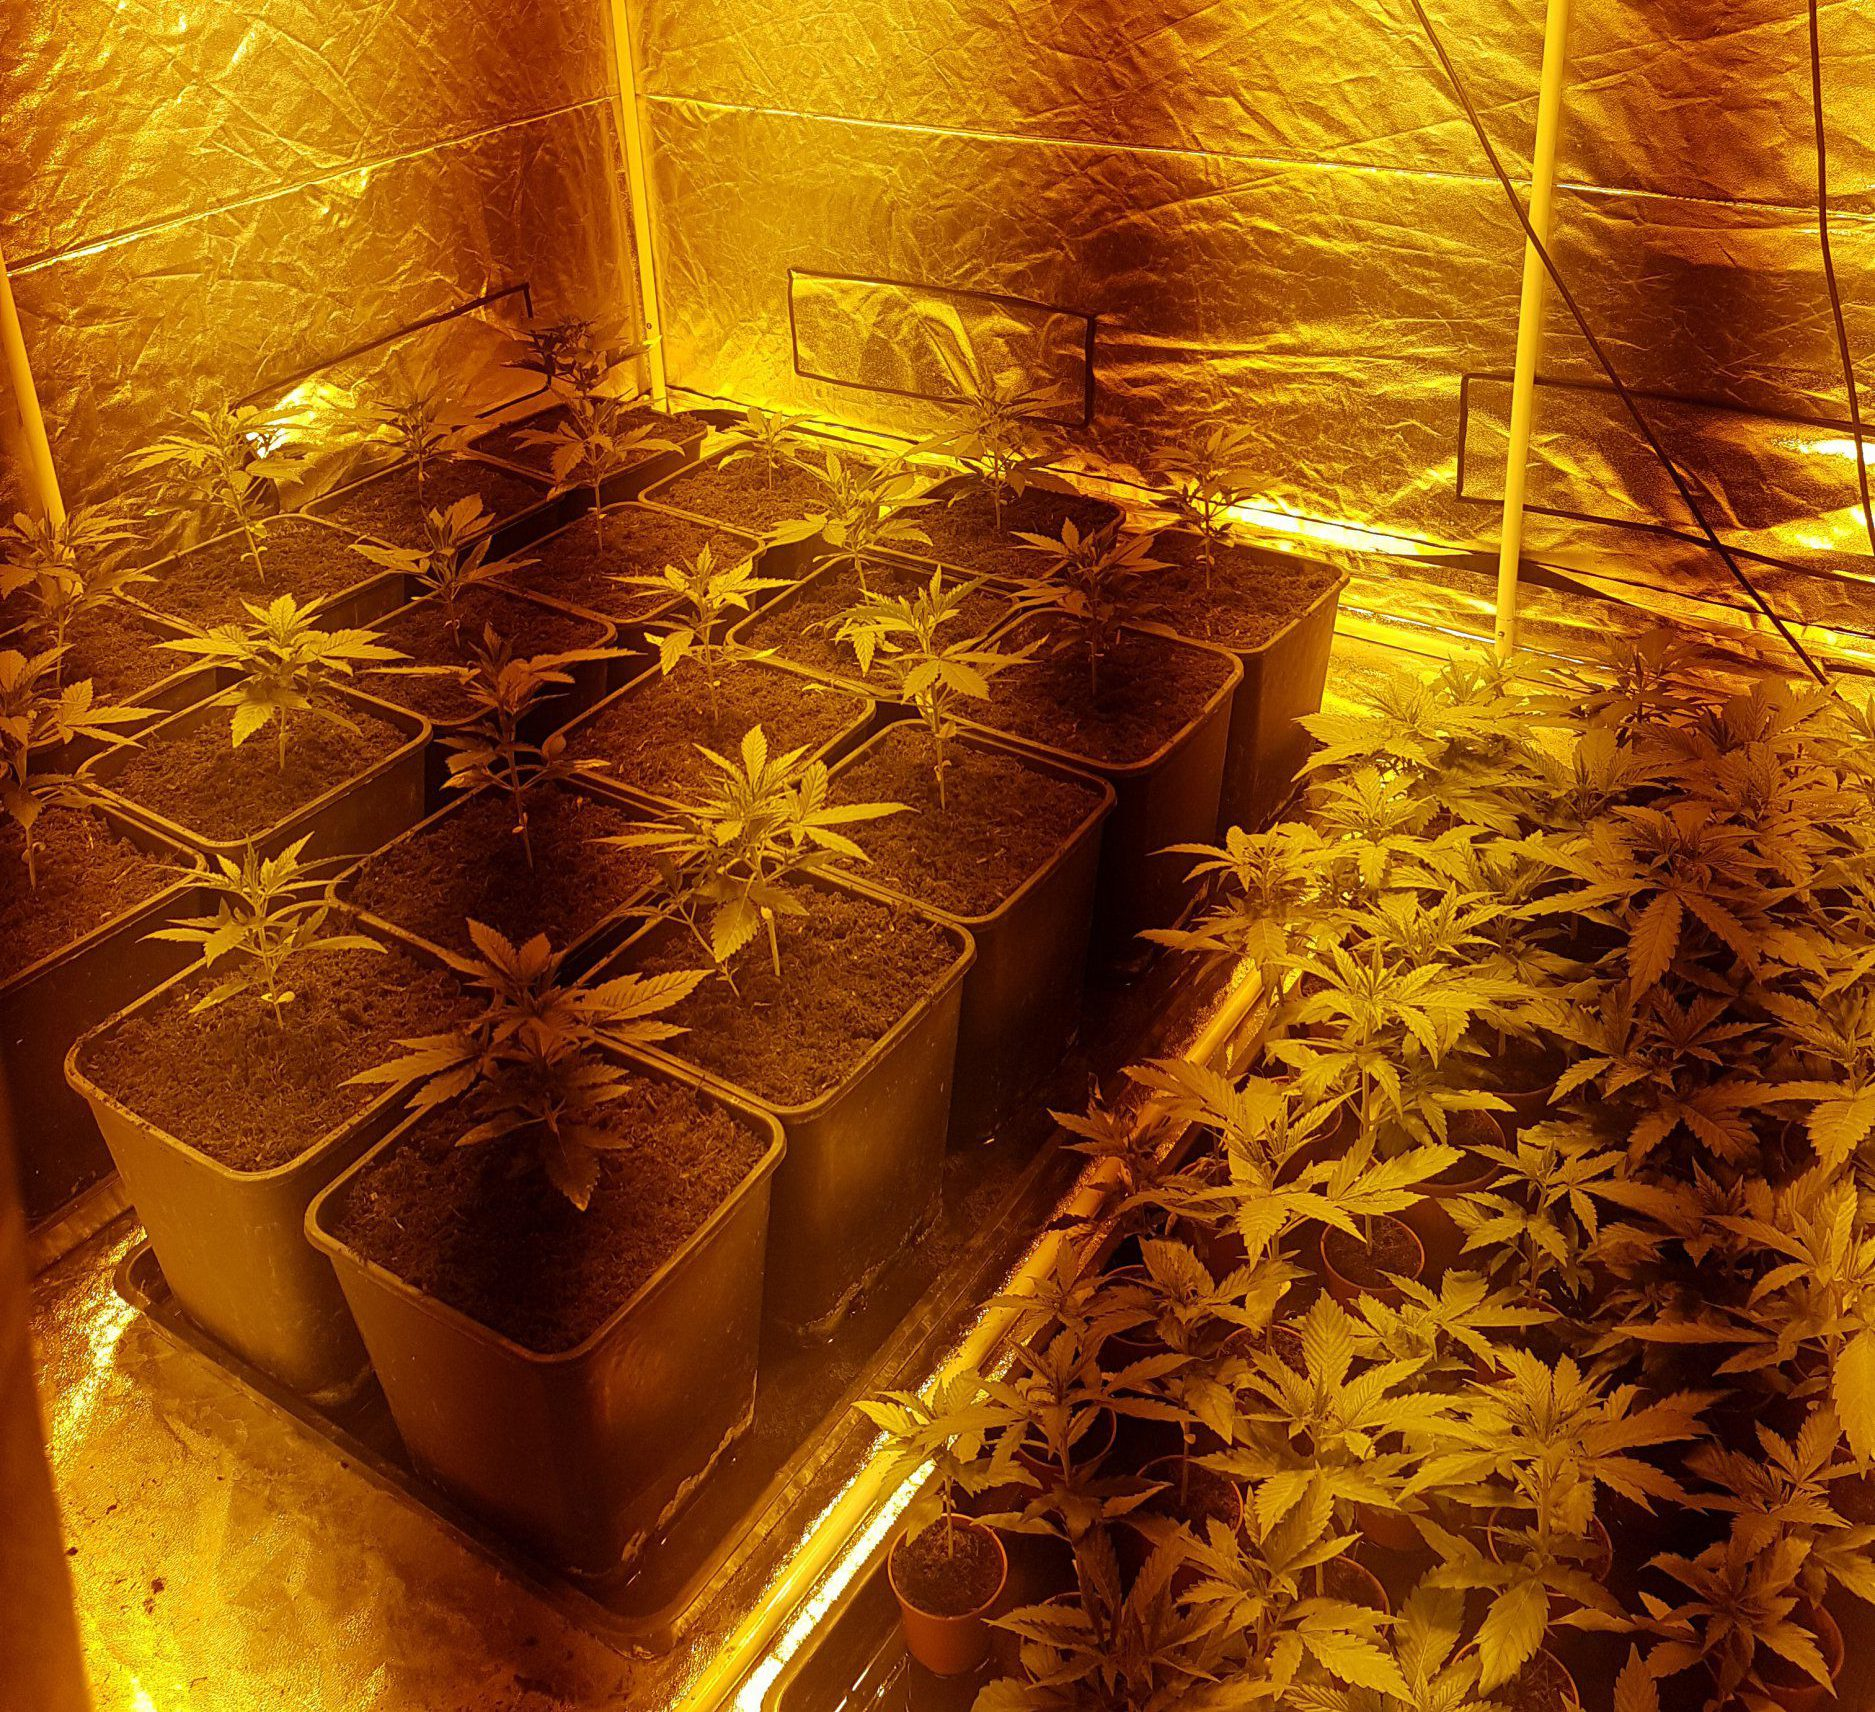 secret cannabis farm found when workers went to check fuse box Electrical Box